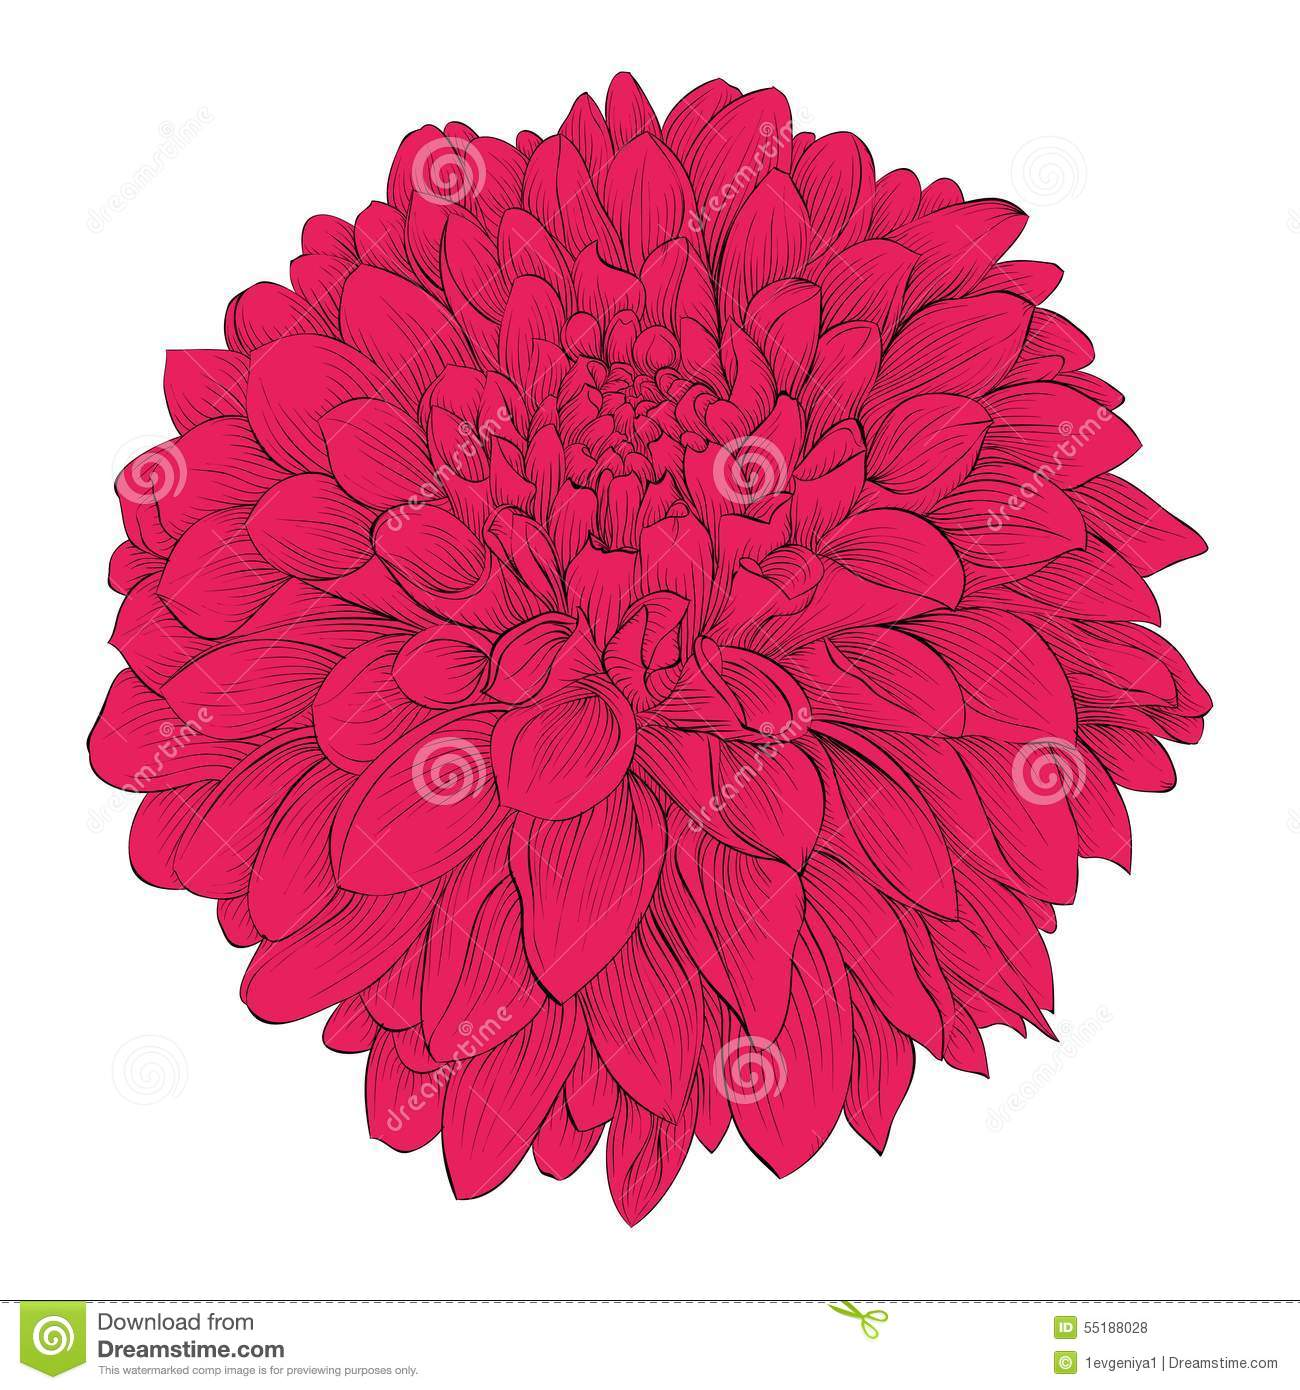 Beautiful Flower Dahlia Isolated On White Background For Design – Greeting Cards and Invitations